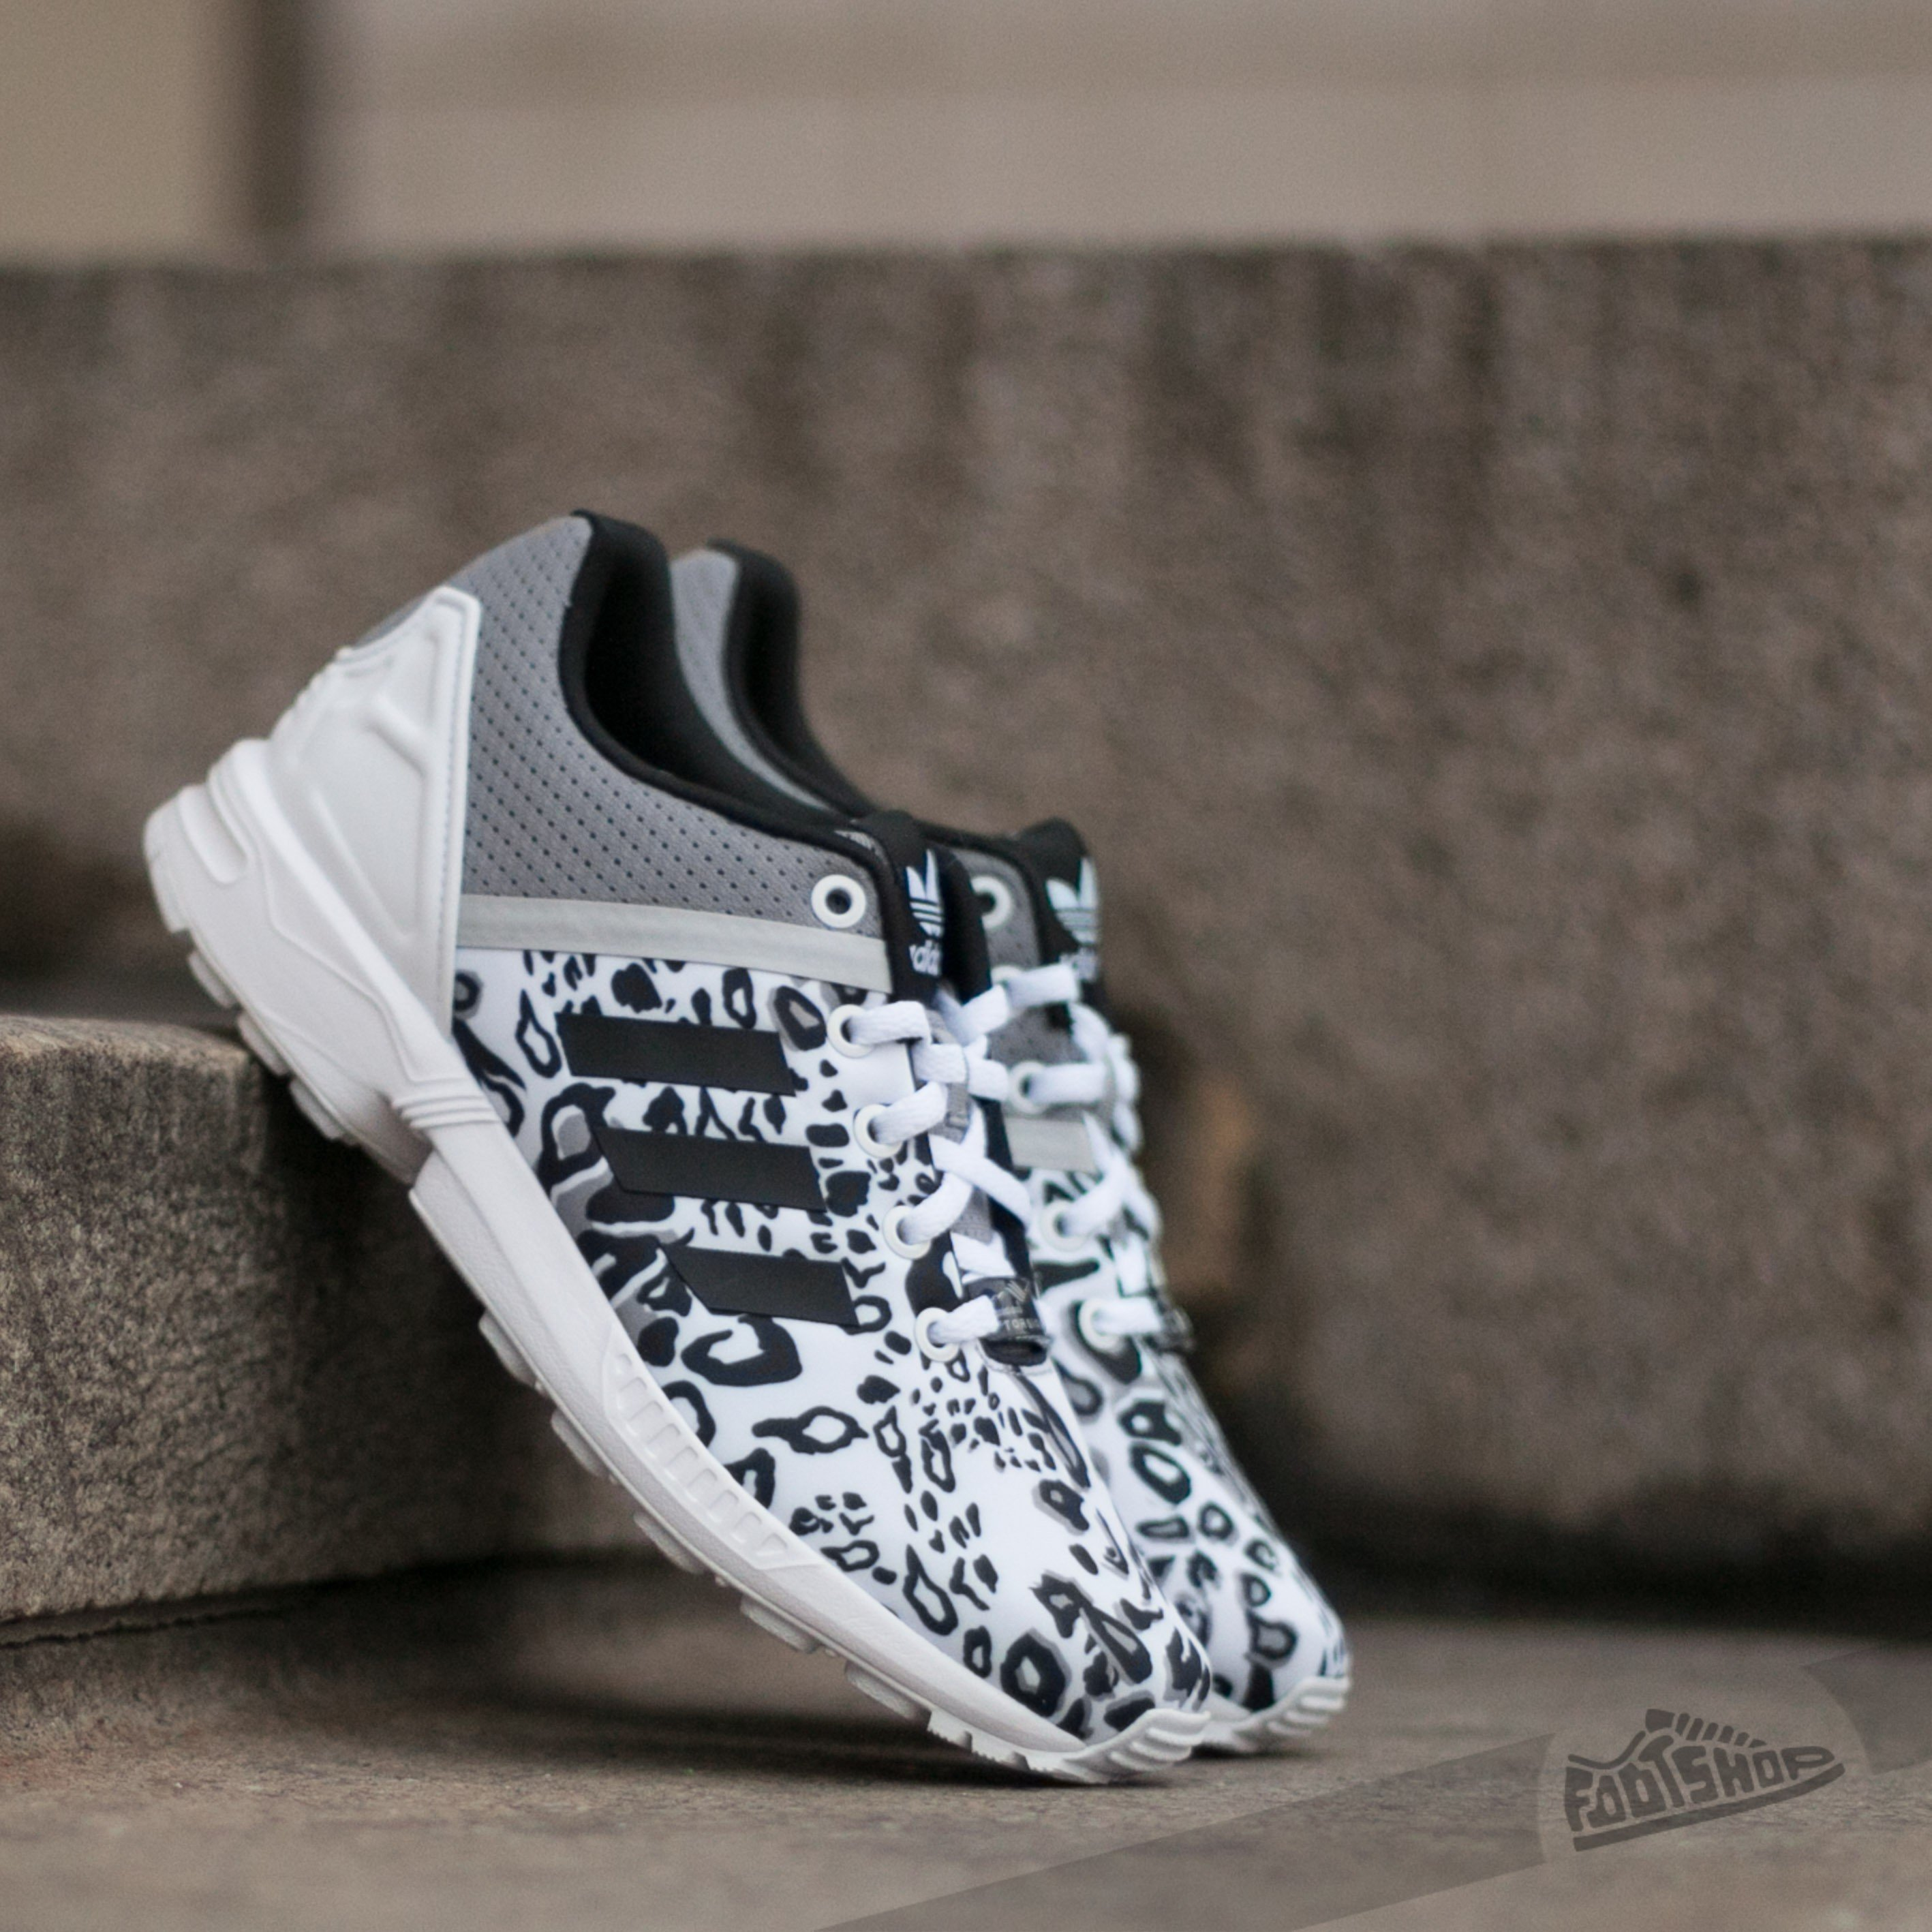 Adidas Originals Adidas Zx Flux Ftw White Core Black